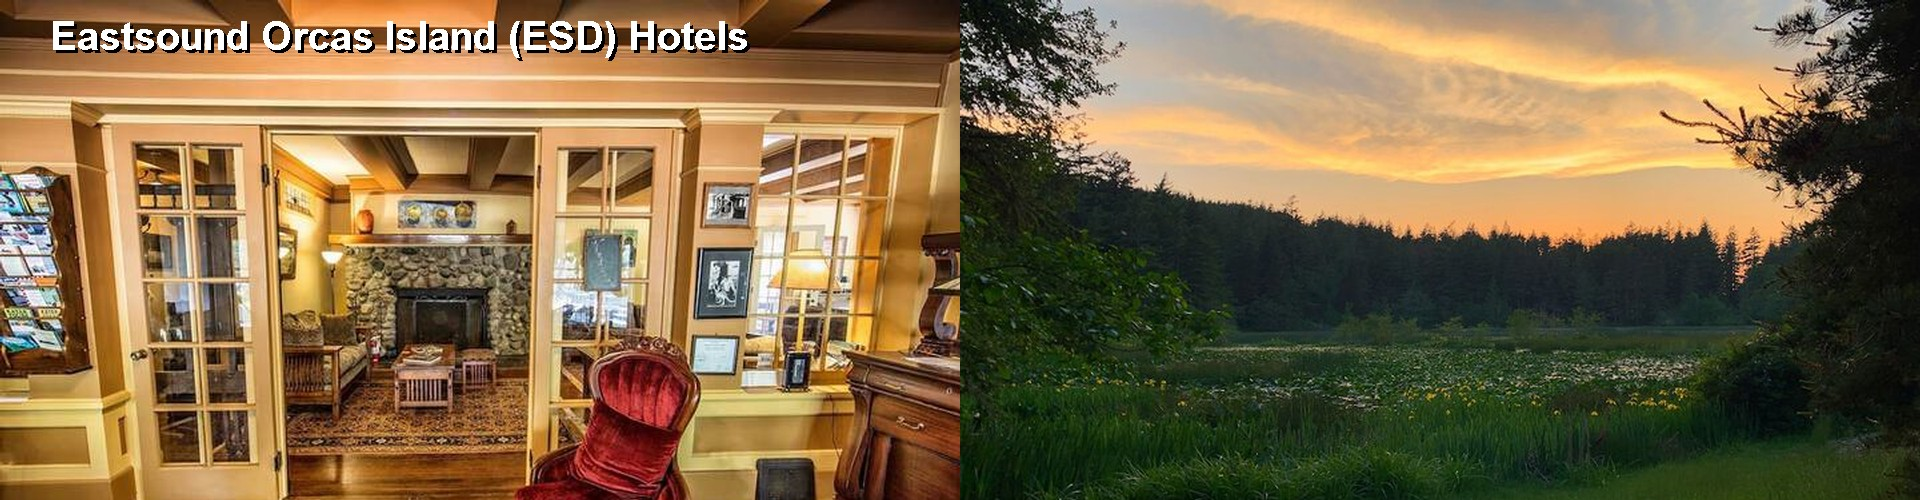 5 Best Hotels near Eastsound Orcas Island (ESD)